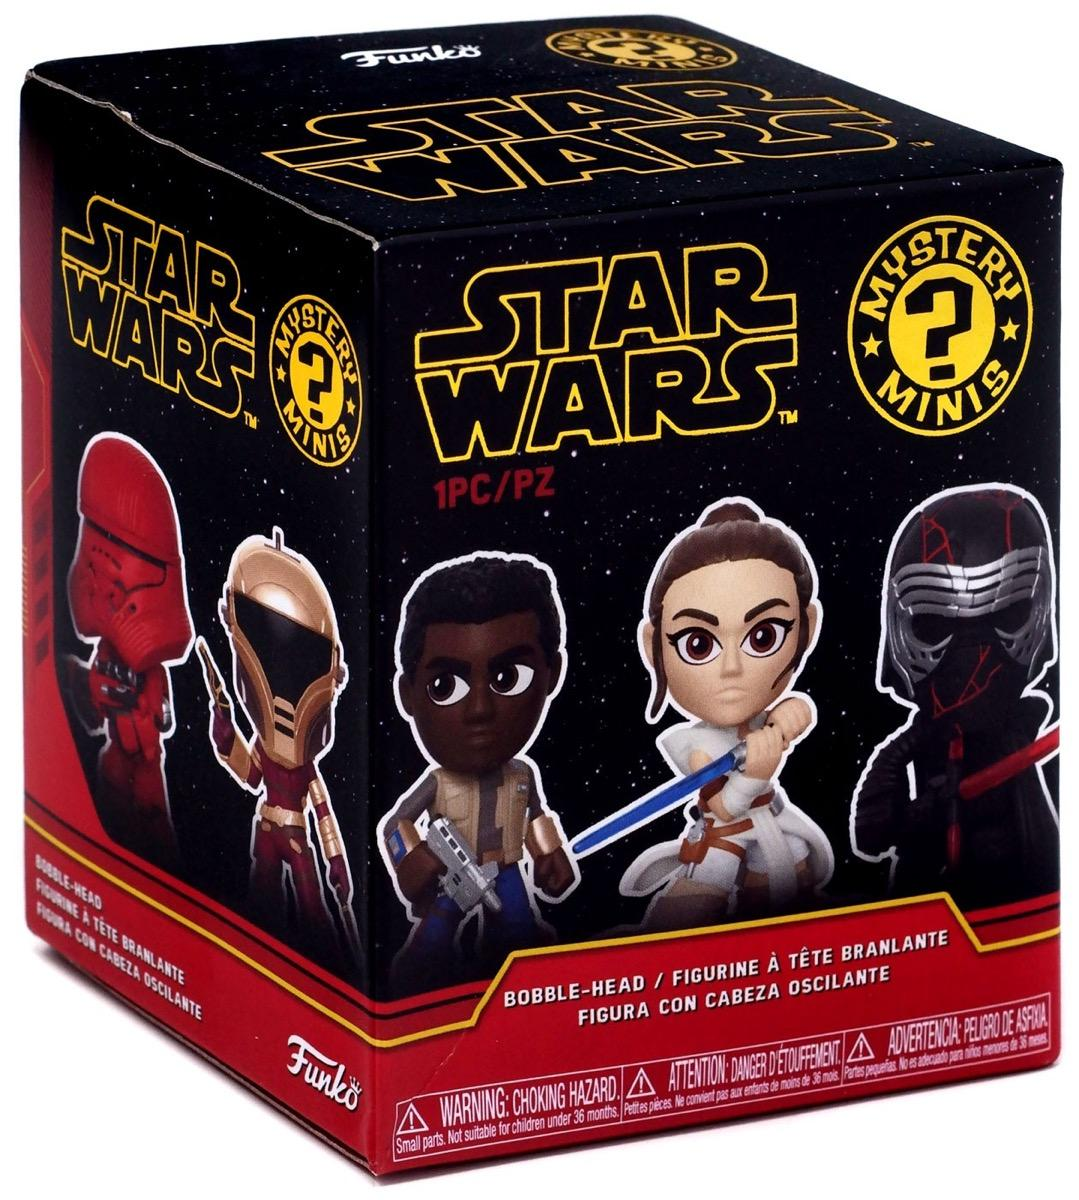 Funko Star Wars Mystery Minis The Rise of Skywalker Mystery Pack